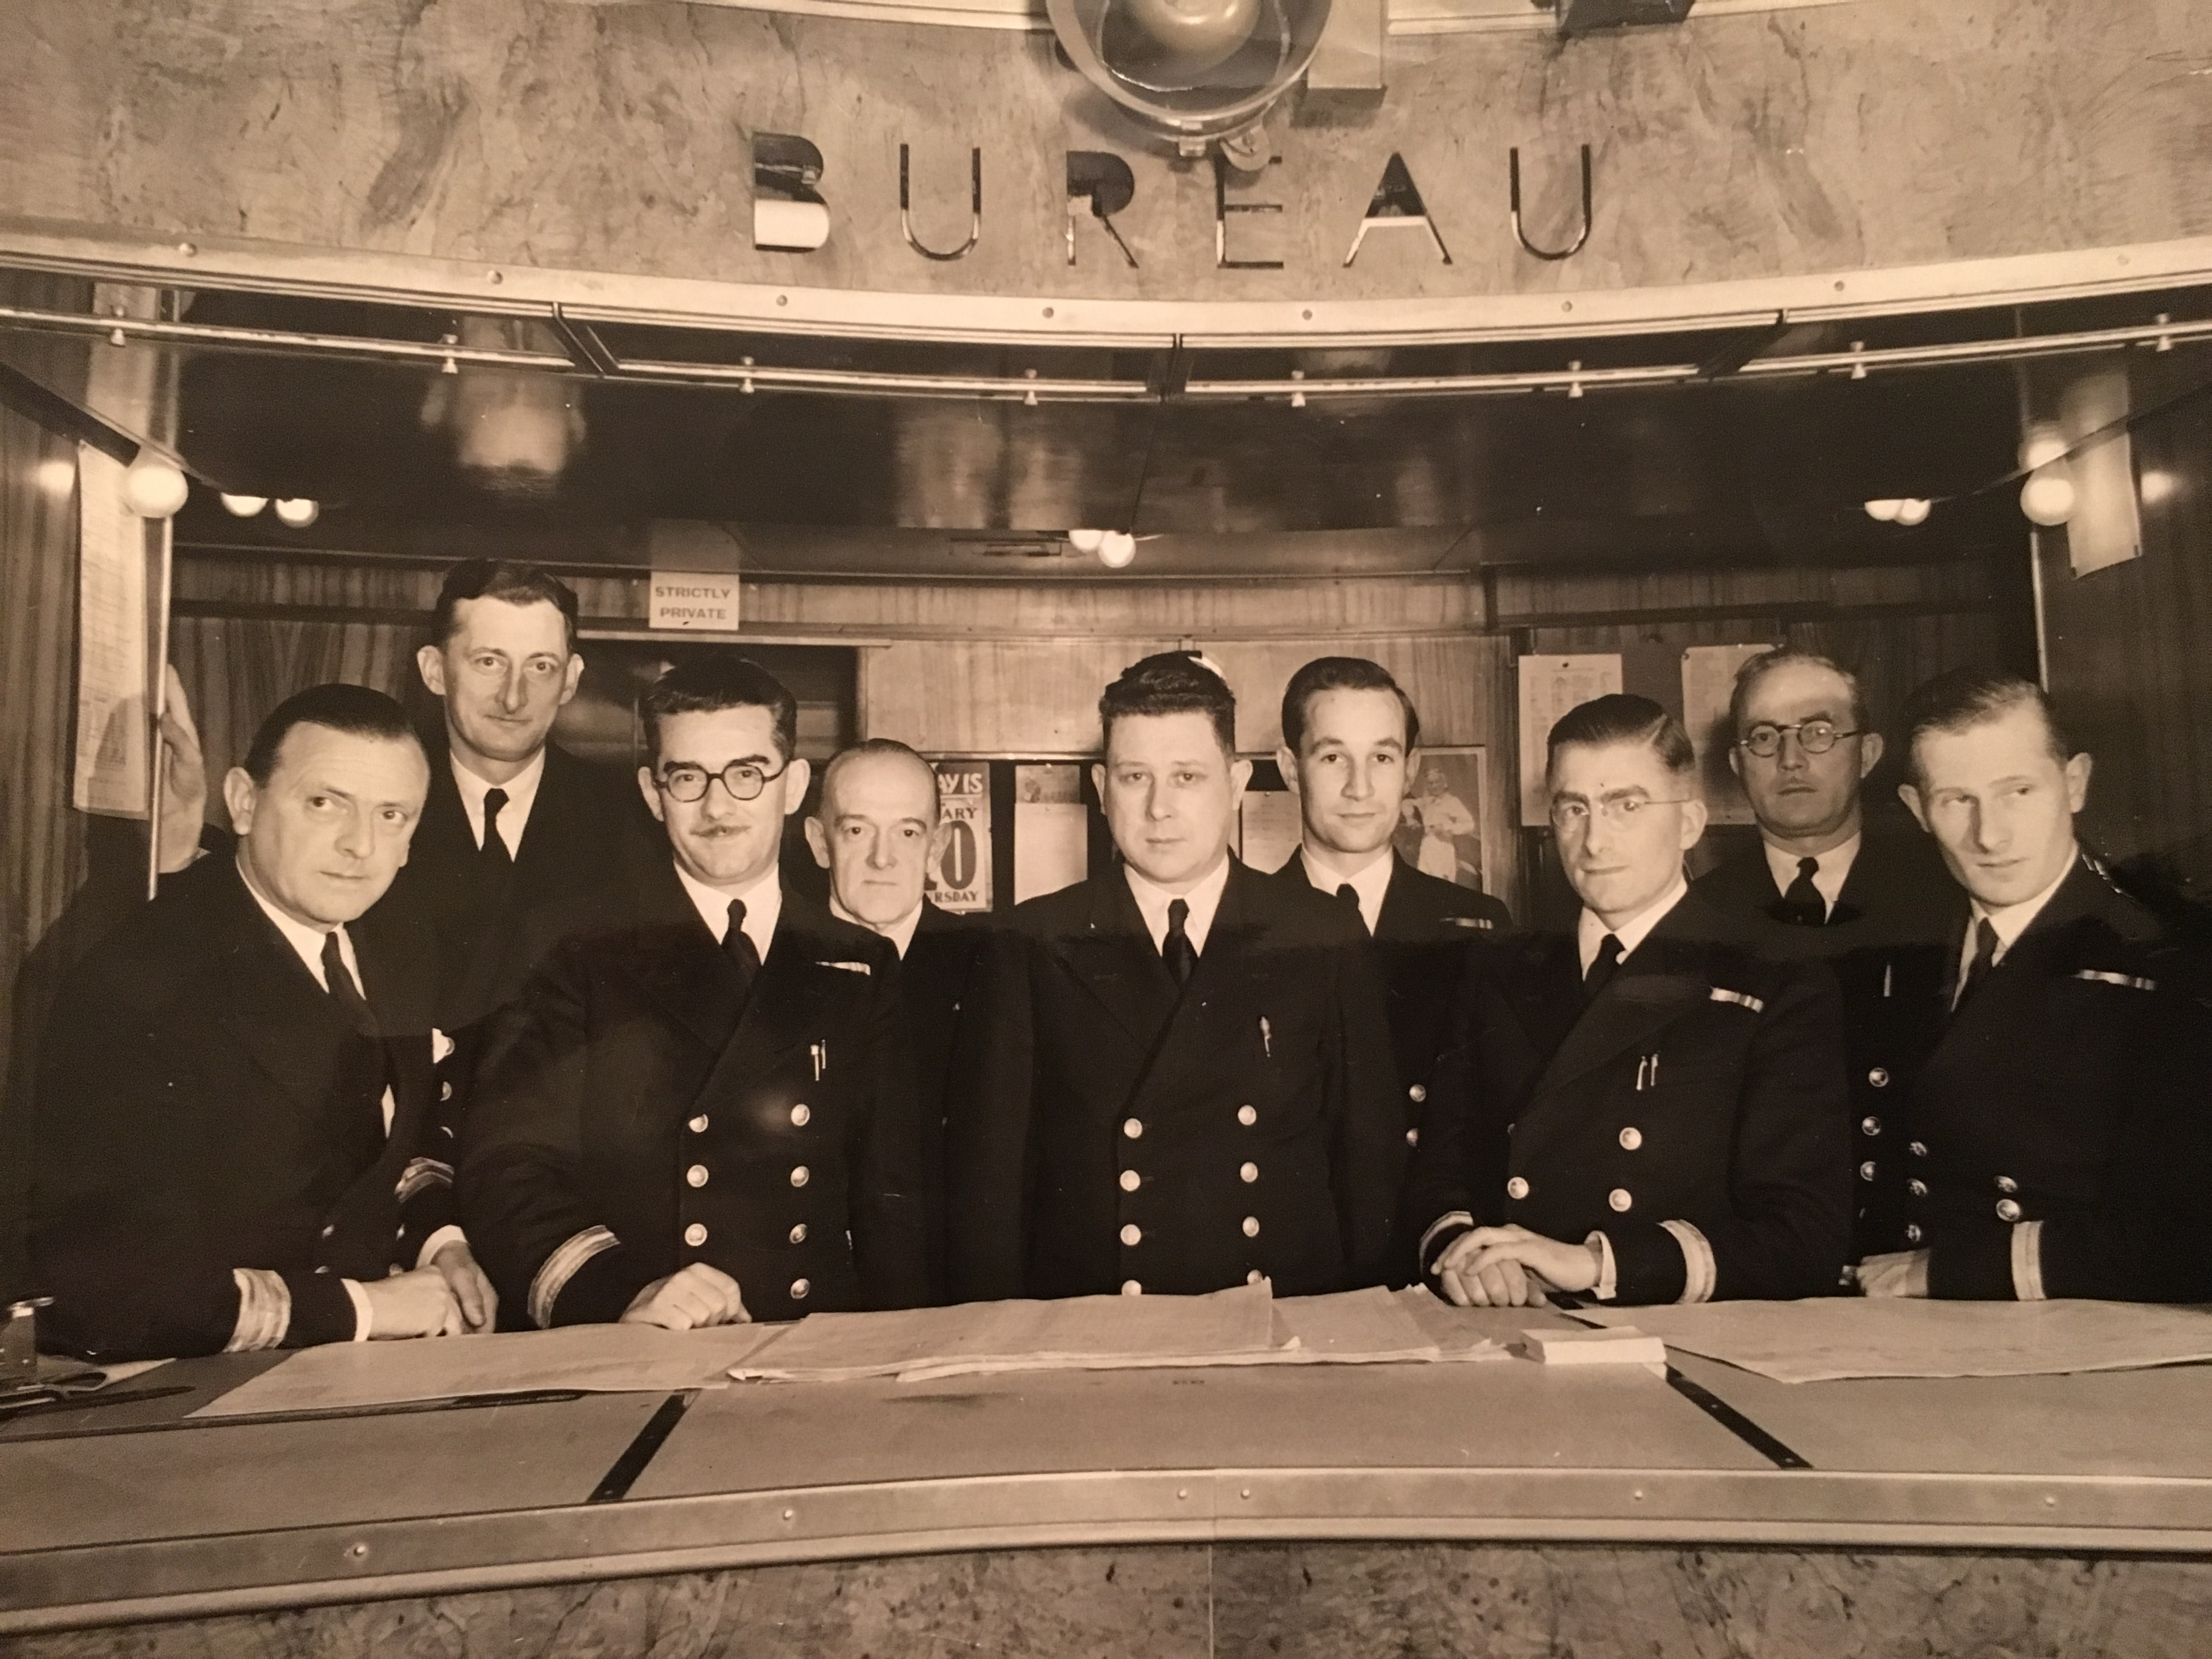 ray mellor merchant marine Historical Perspectives: CWC: The Watch That Replaced The MilSub Historical Perspectives: CWC: The Watch That Replaced The MilSub Mellor 4thfromright